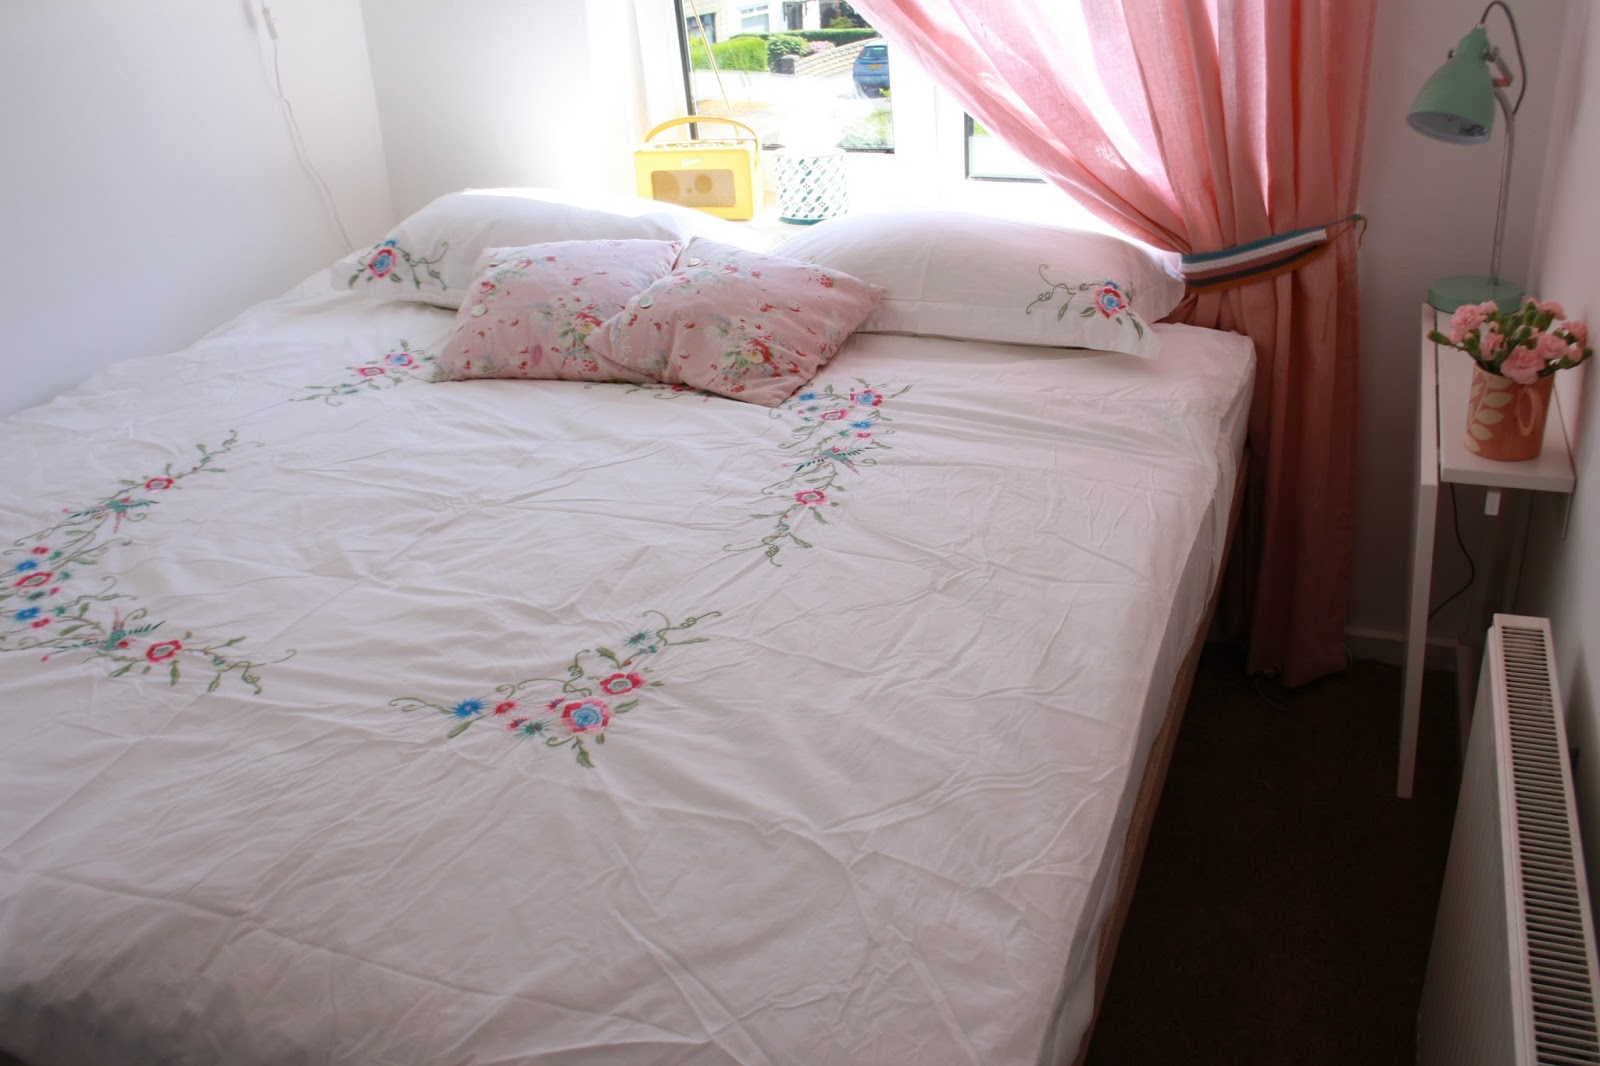 Big Bed Small Room tales from a happy house.: the tiniest spare room there ever was